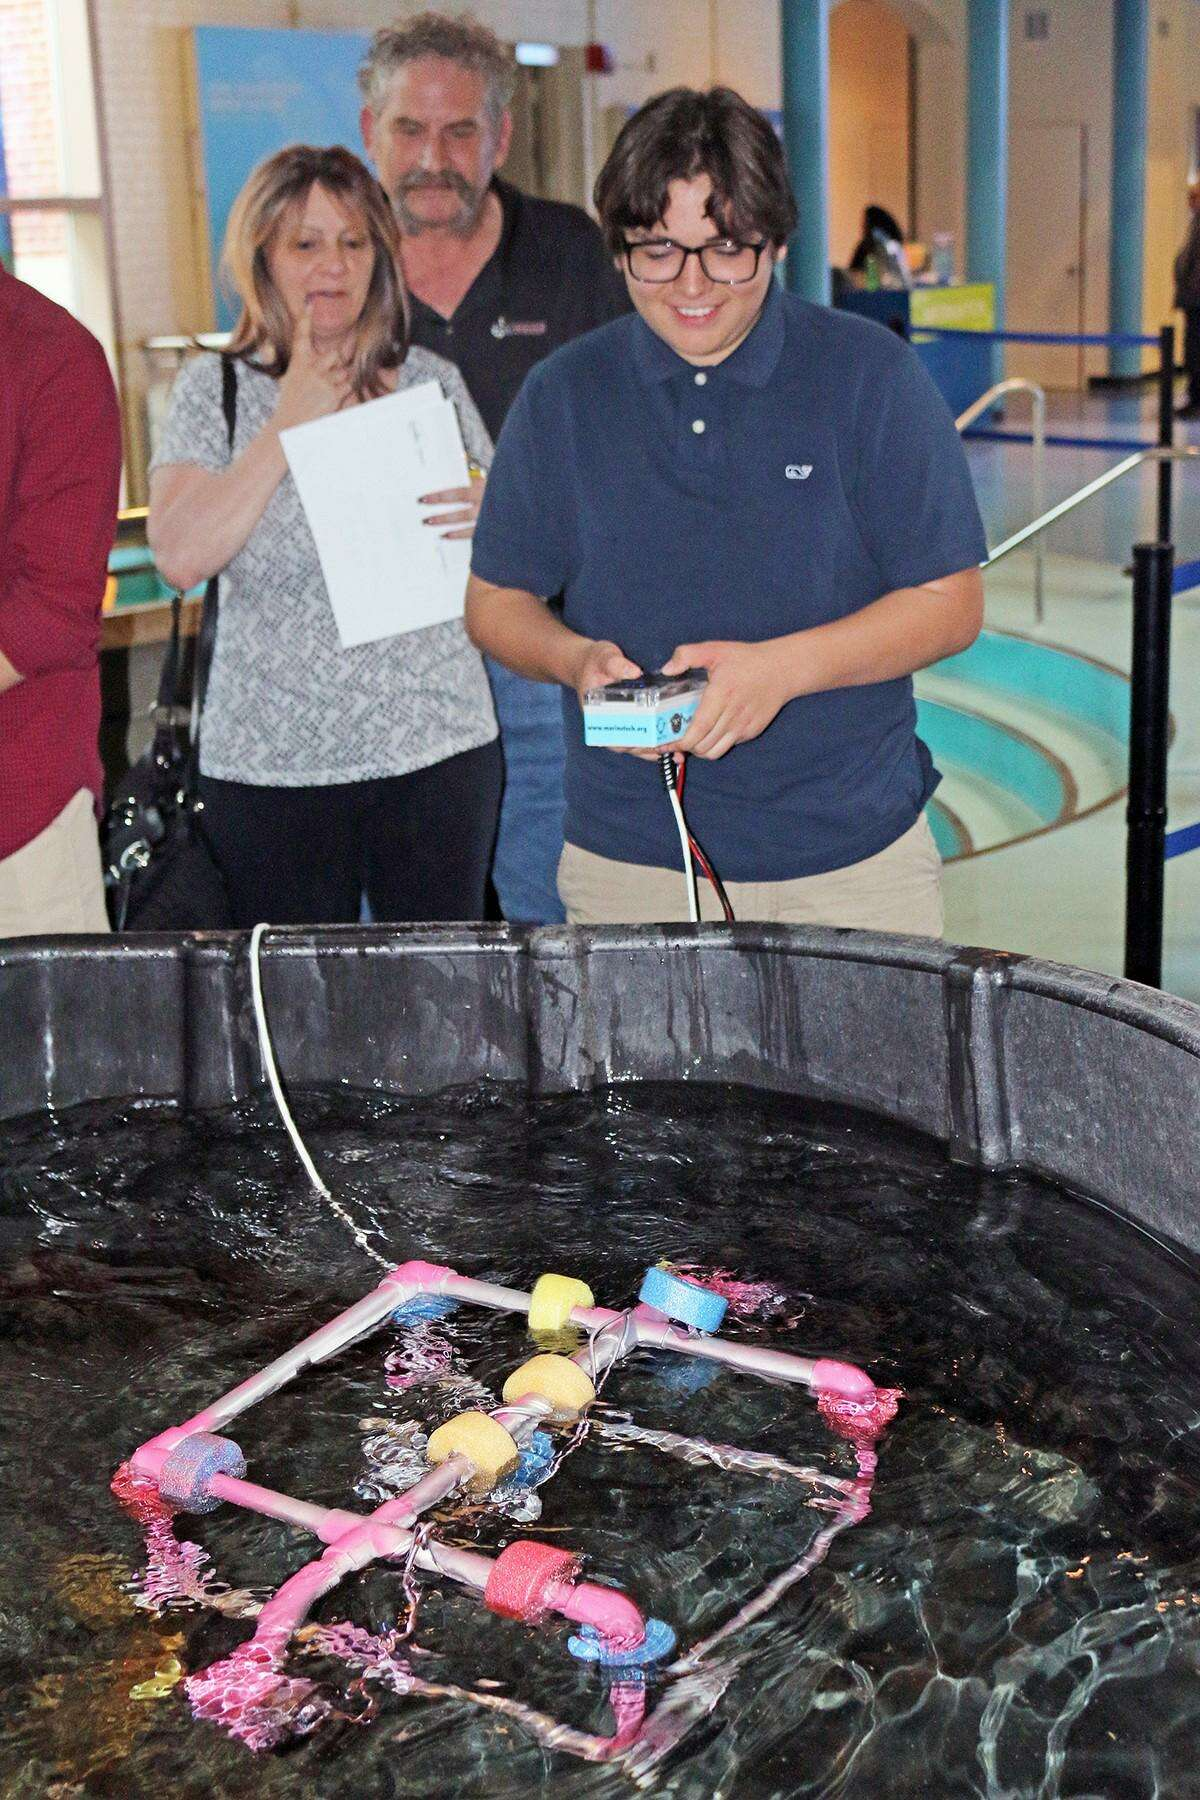 Angel Espana, a sophomore at Norwalk High School, demonstrates his underwater remotely operated vehicle (ROV) during the end-of-year celebration of the TeMPEST program May 24 at The Maritime Aquarium at Norwalk.